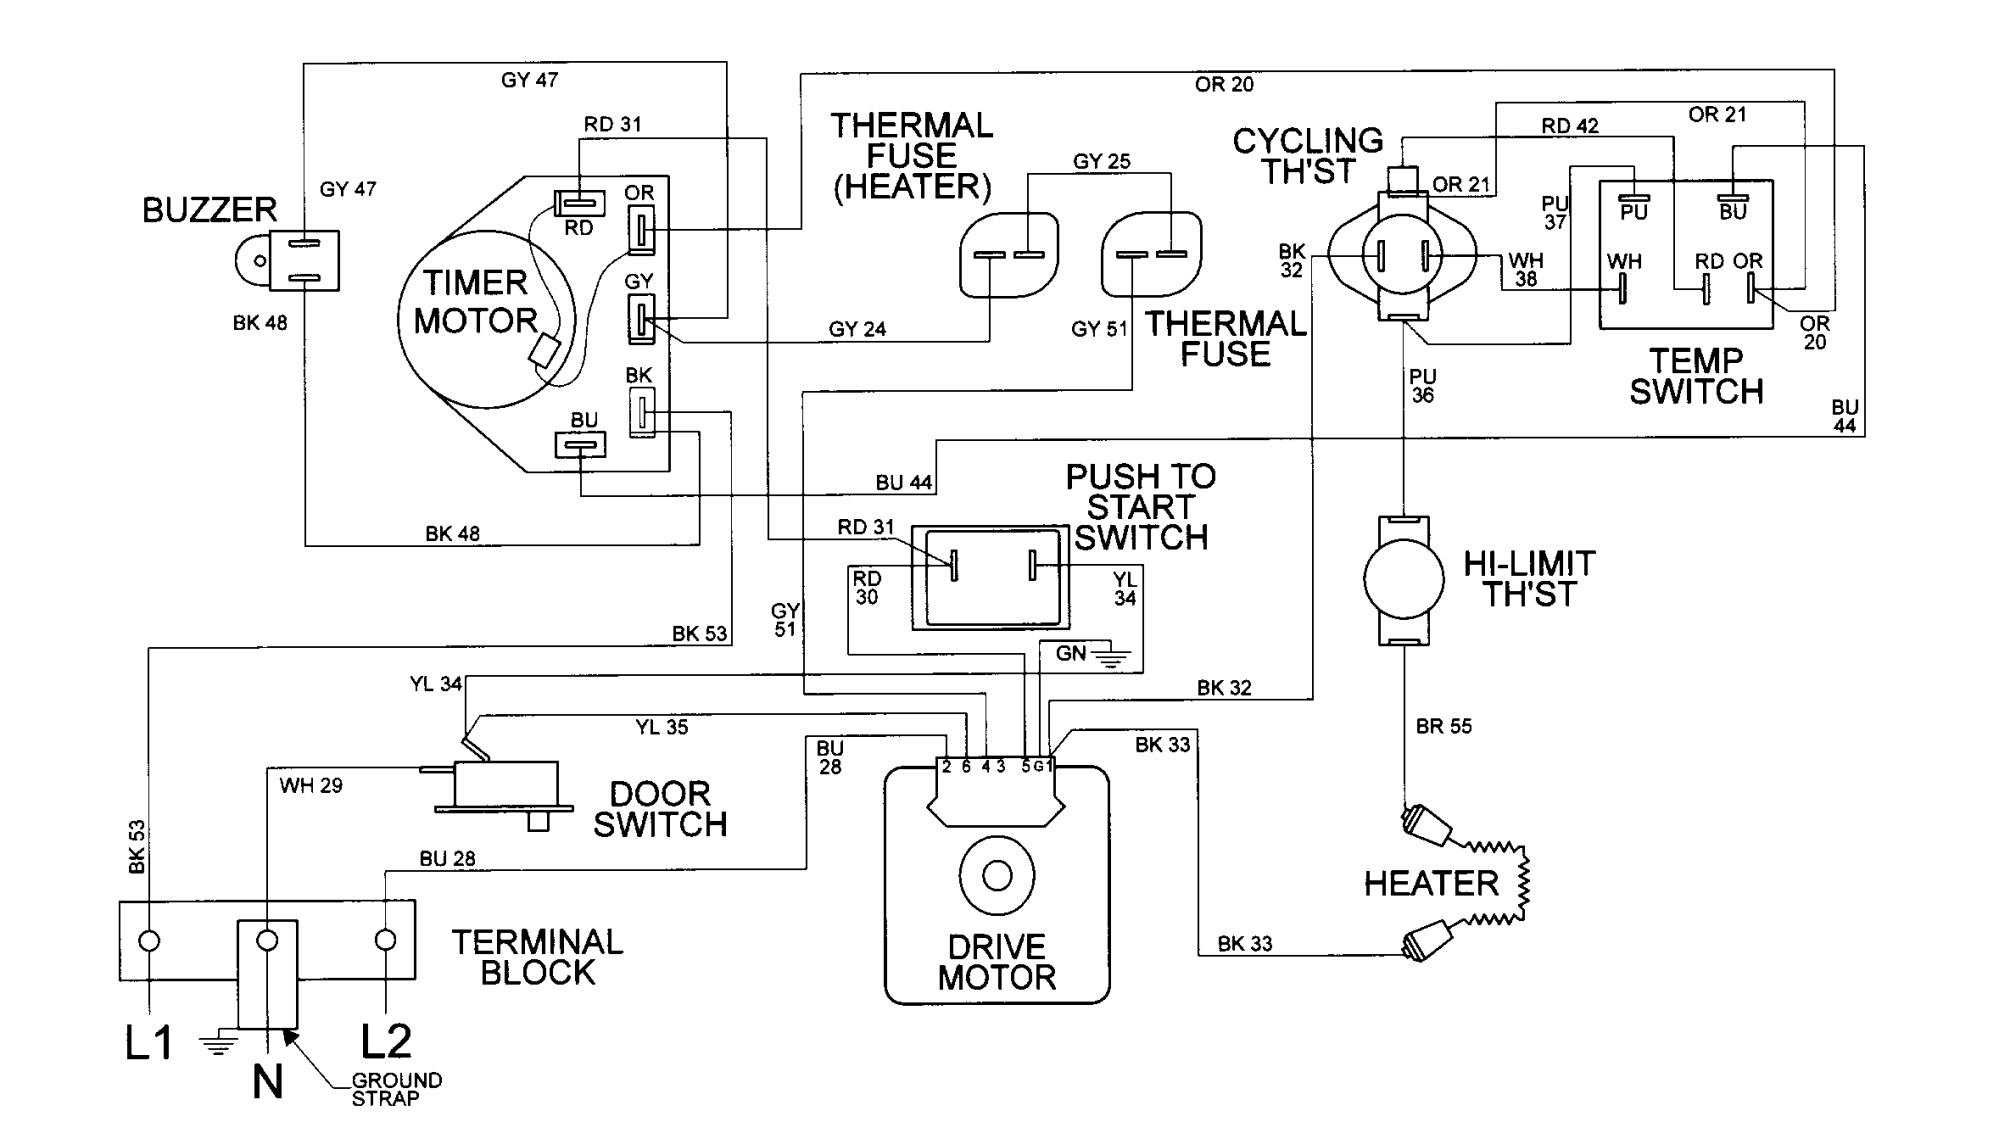 hight resolution of whirlpool electric dryer wiring diagram